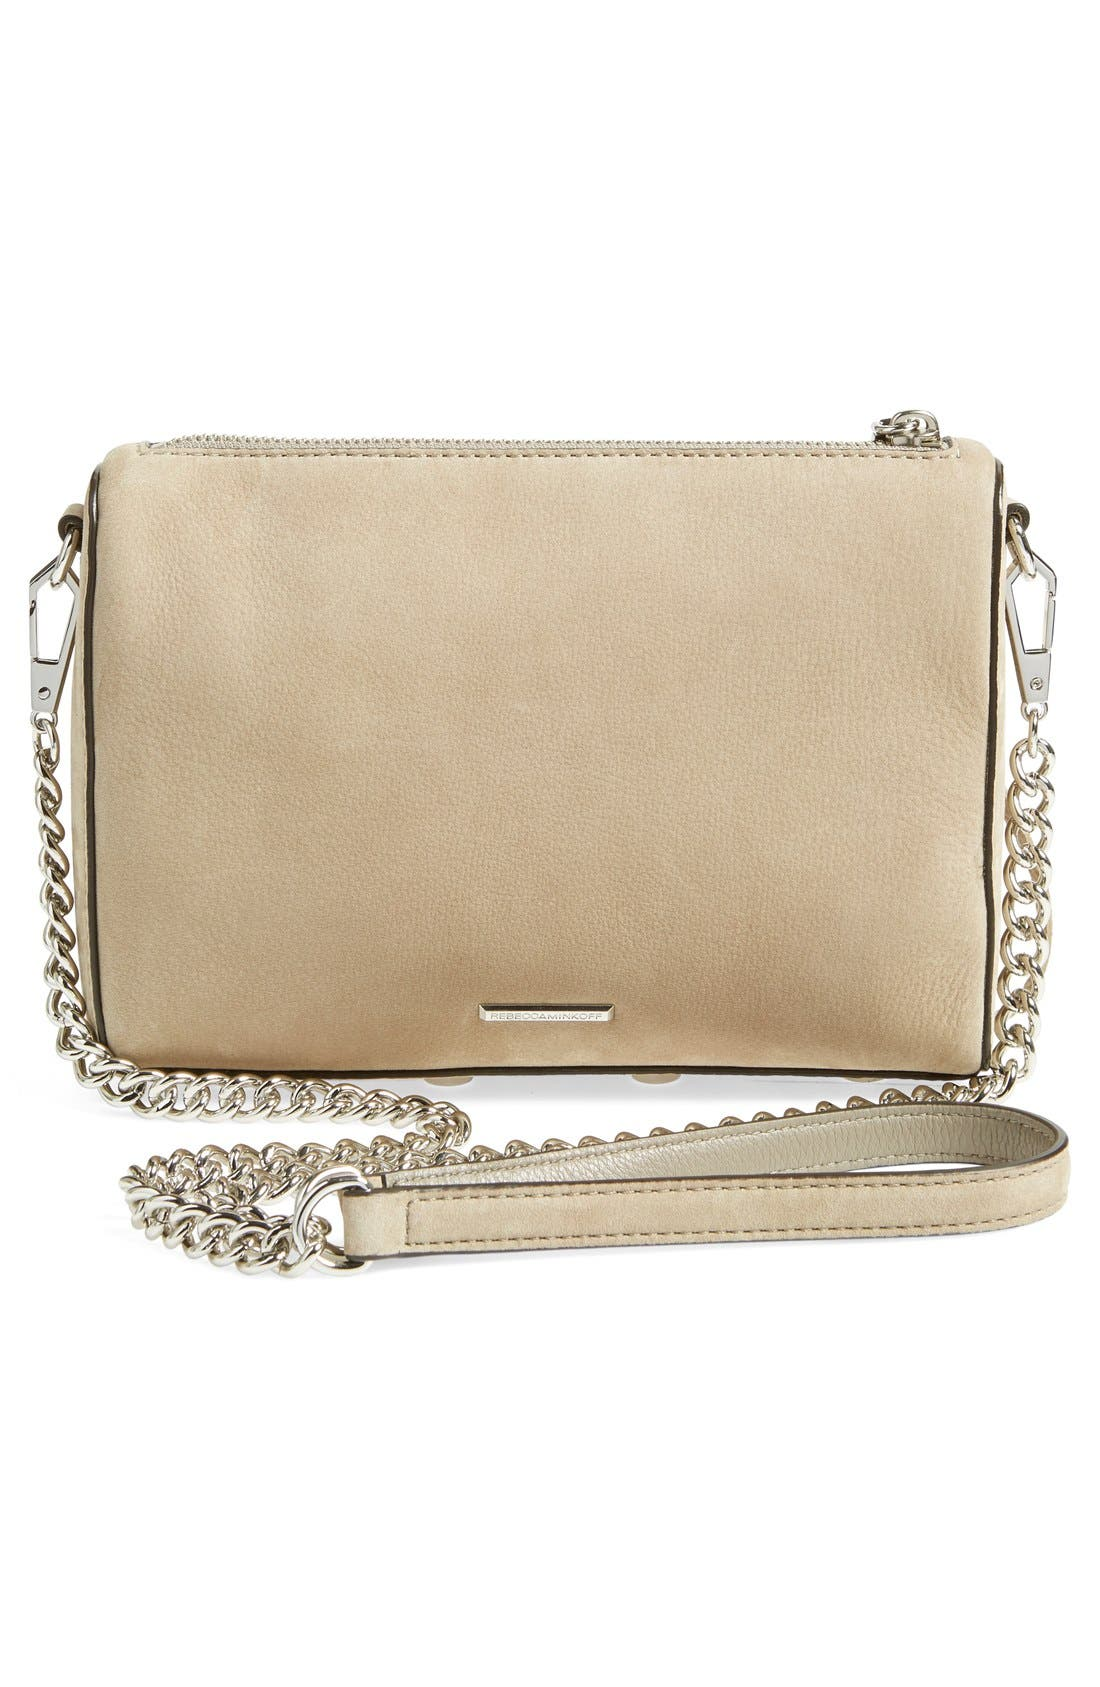 Alternate Image 3  - Rebecca Minkoff 'Avery' Crossbody Bag